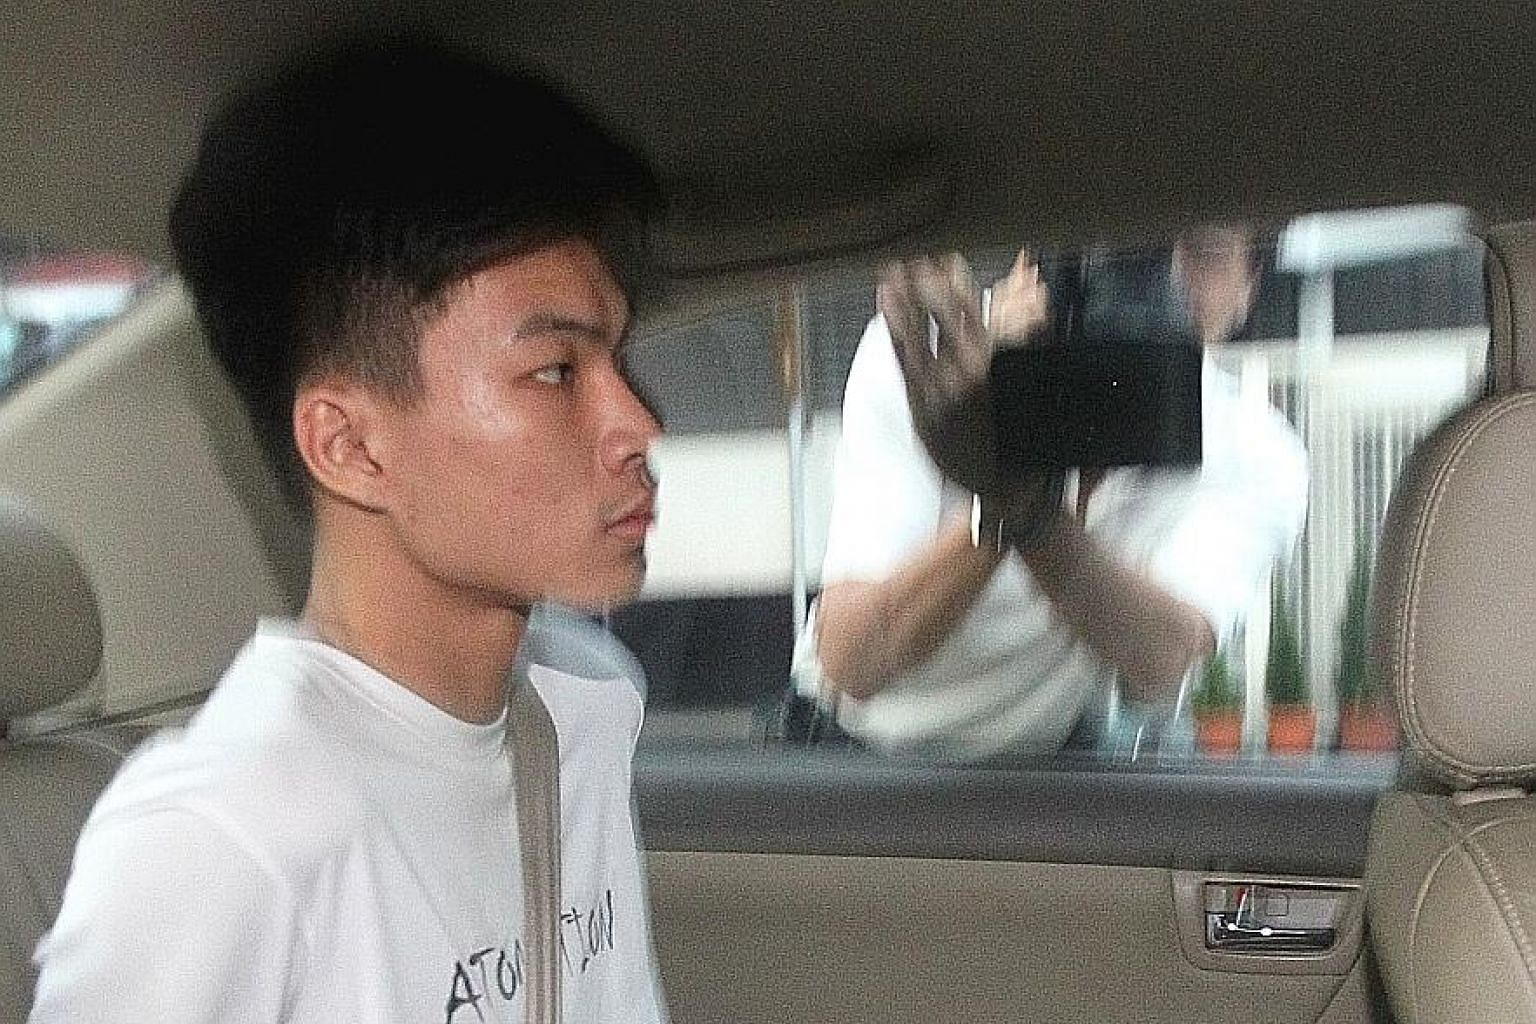 Looi Yu Chong, 20, is linked to a case in which fraudsters allegedly pretended to be officials from China to get a woman to surrender her money.